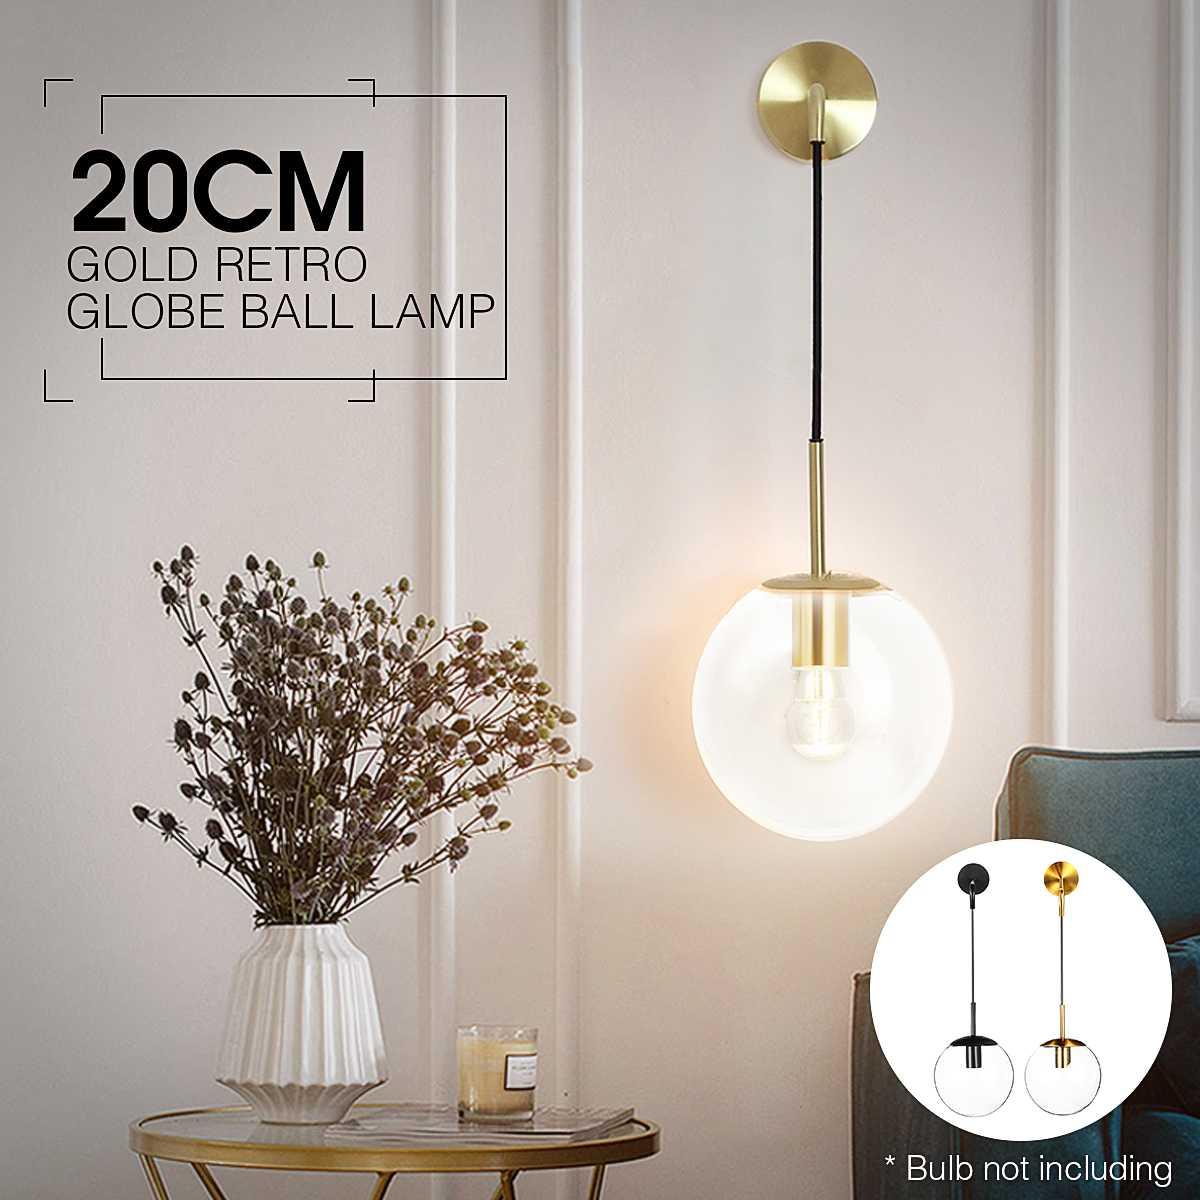 Nordic Modern Clear Glass Globe Ball Lamp Indoor Wall Lamp LED Hanging Lamp Home Loft Industrial Decor Luminaire